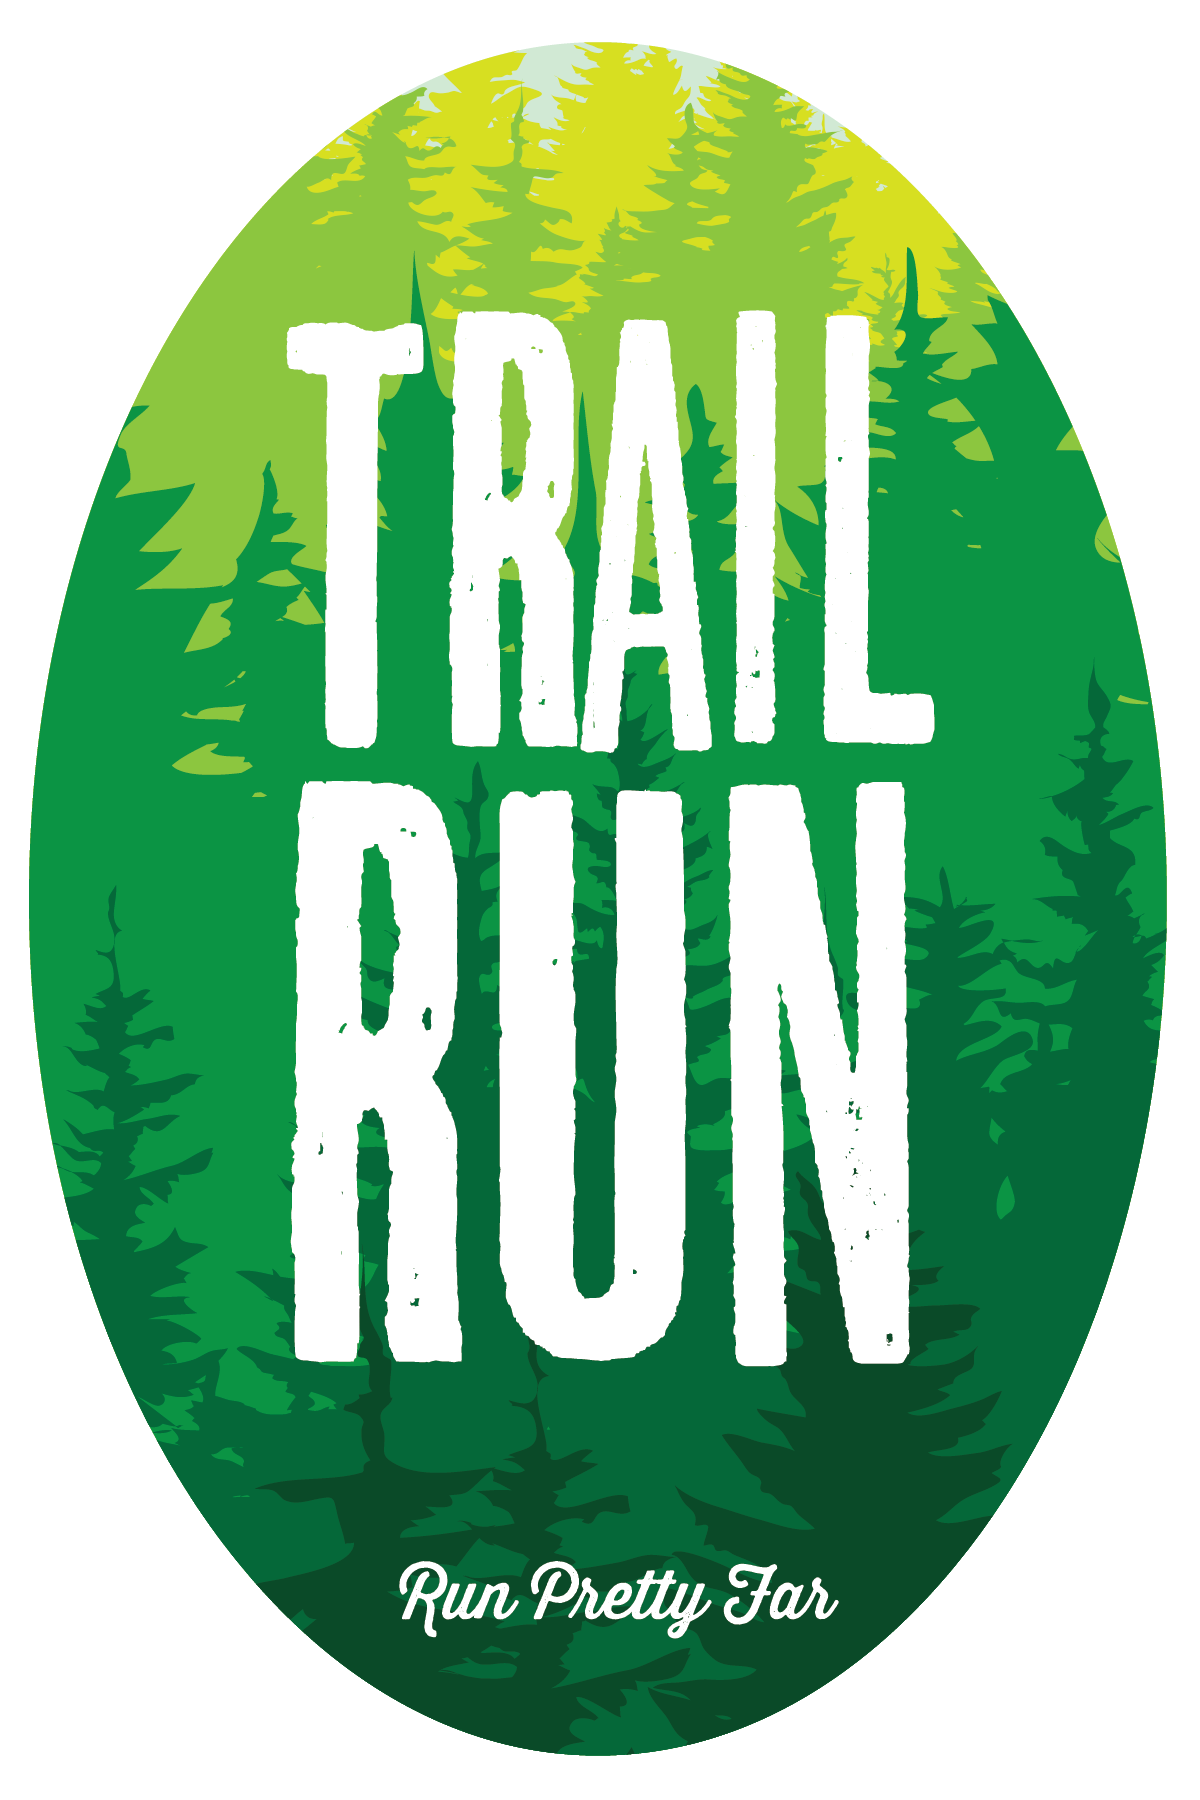 sticker created for Run Pretty Far